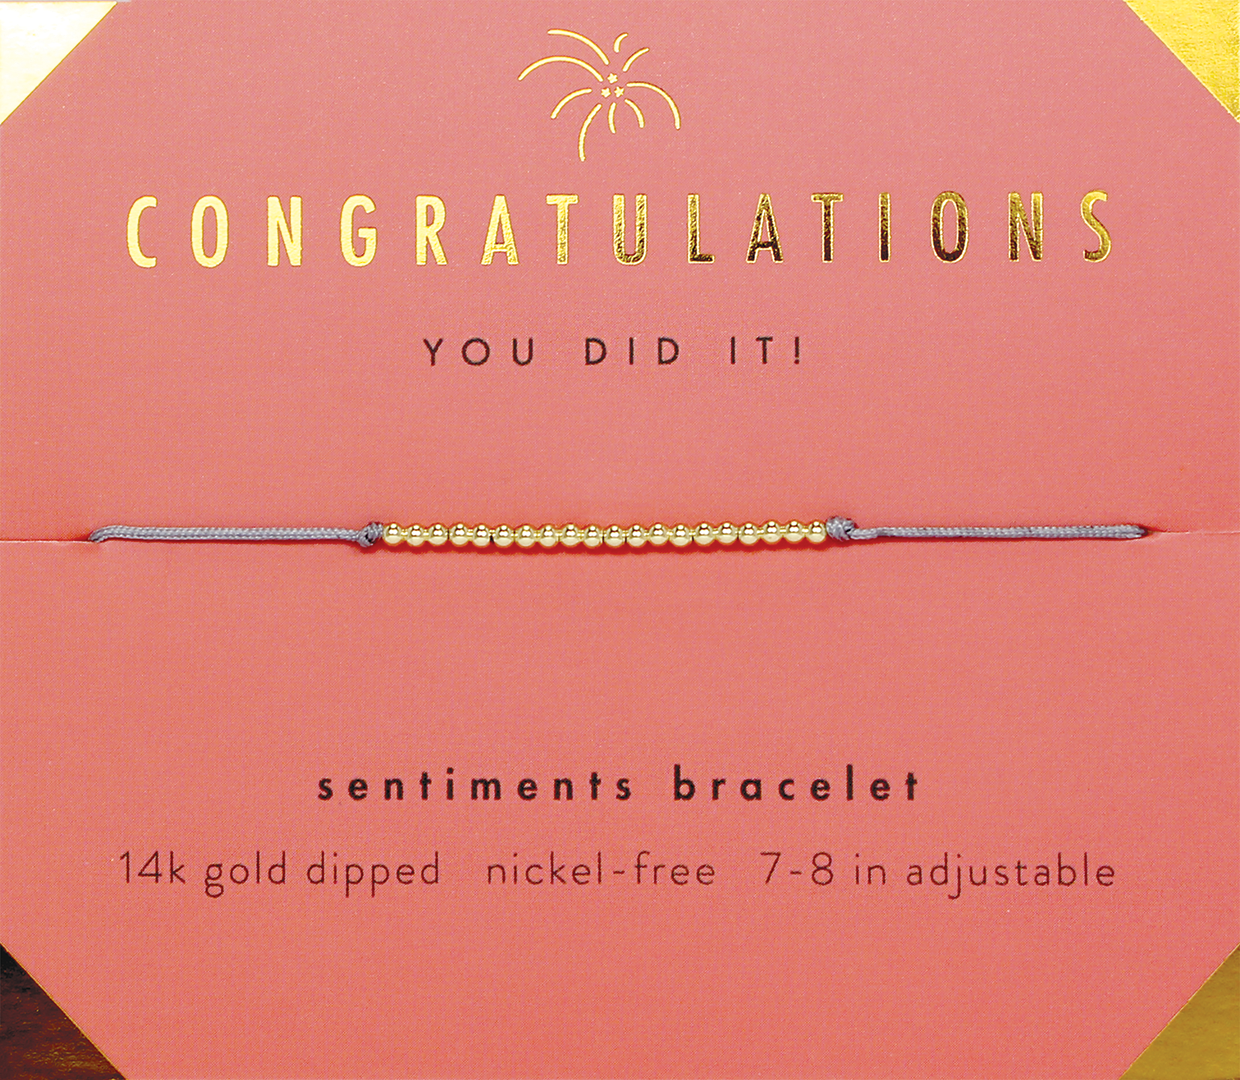 Sentiments Bracelet- Congratulations